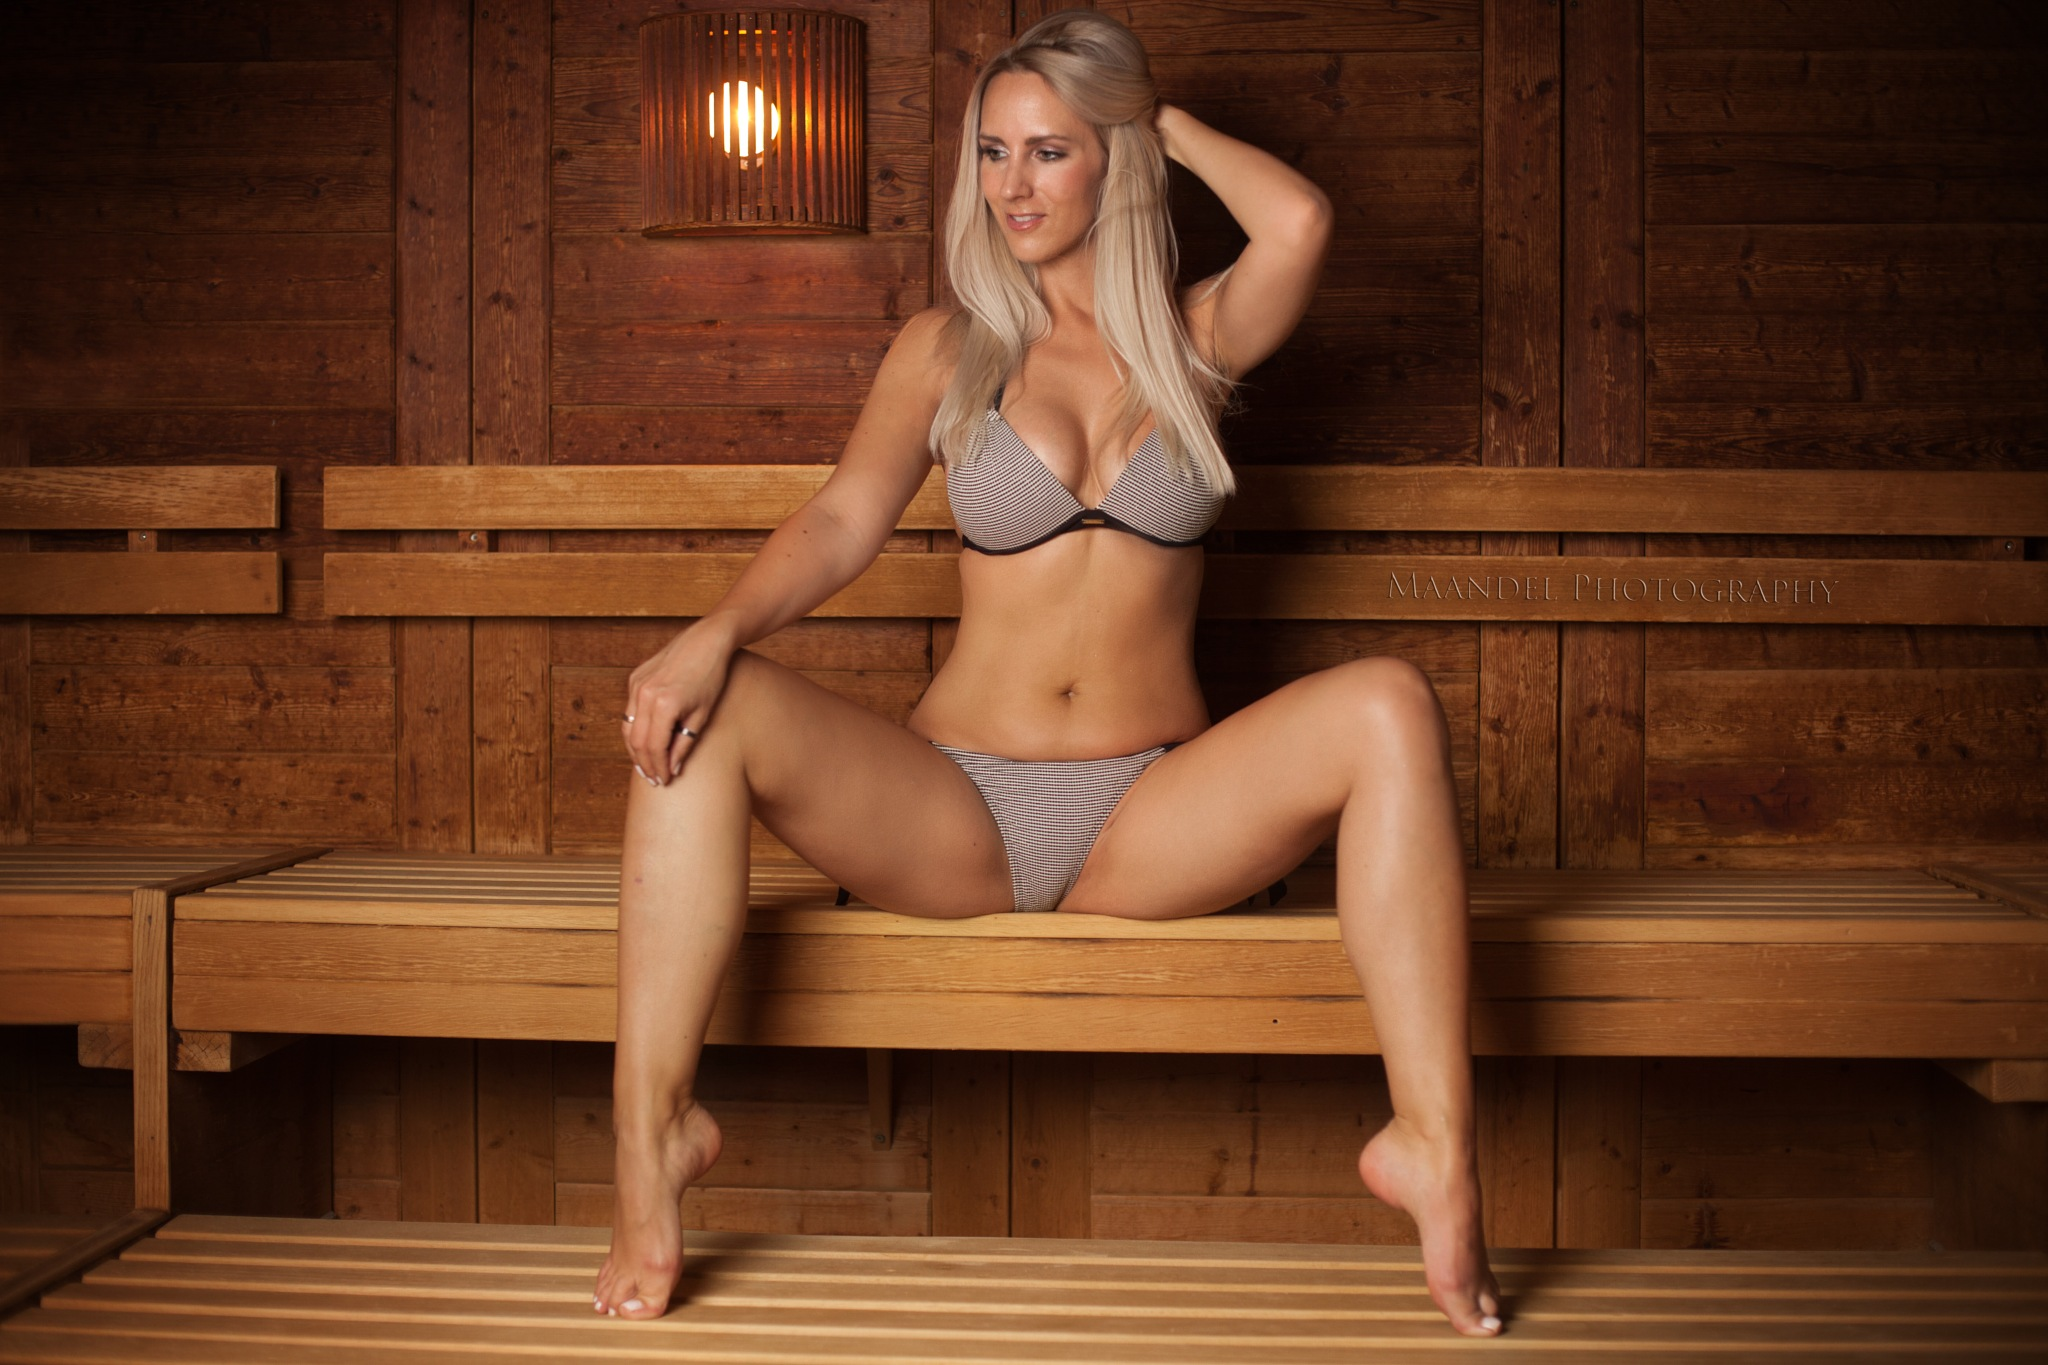 Sauna by Maandel Photography